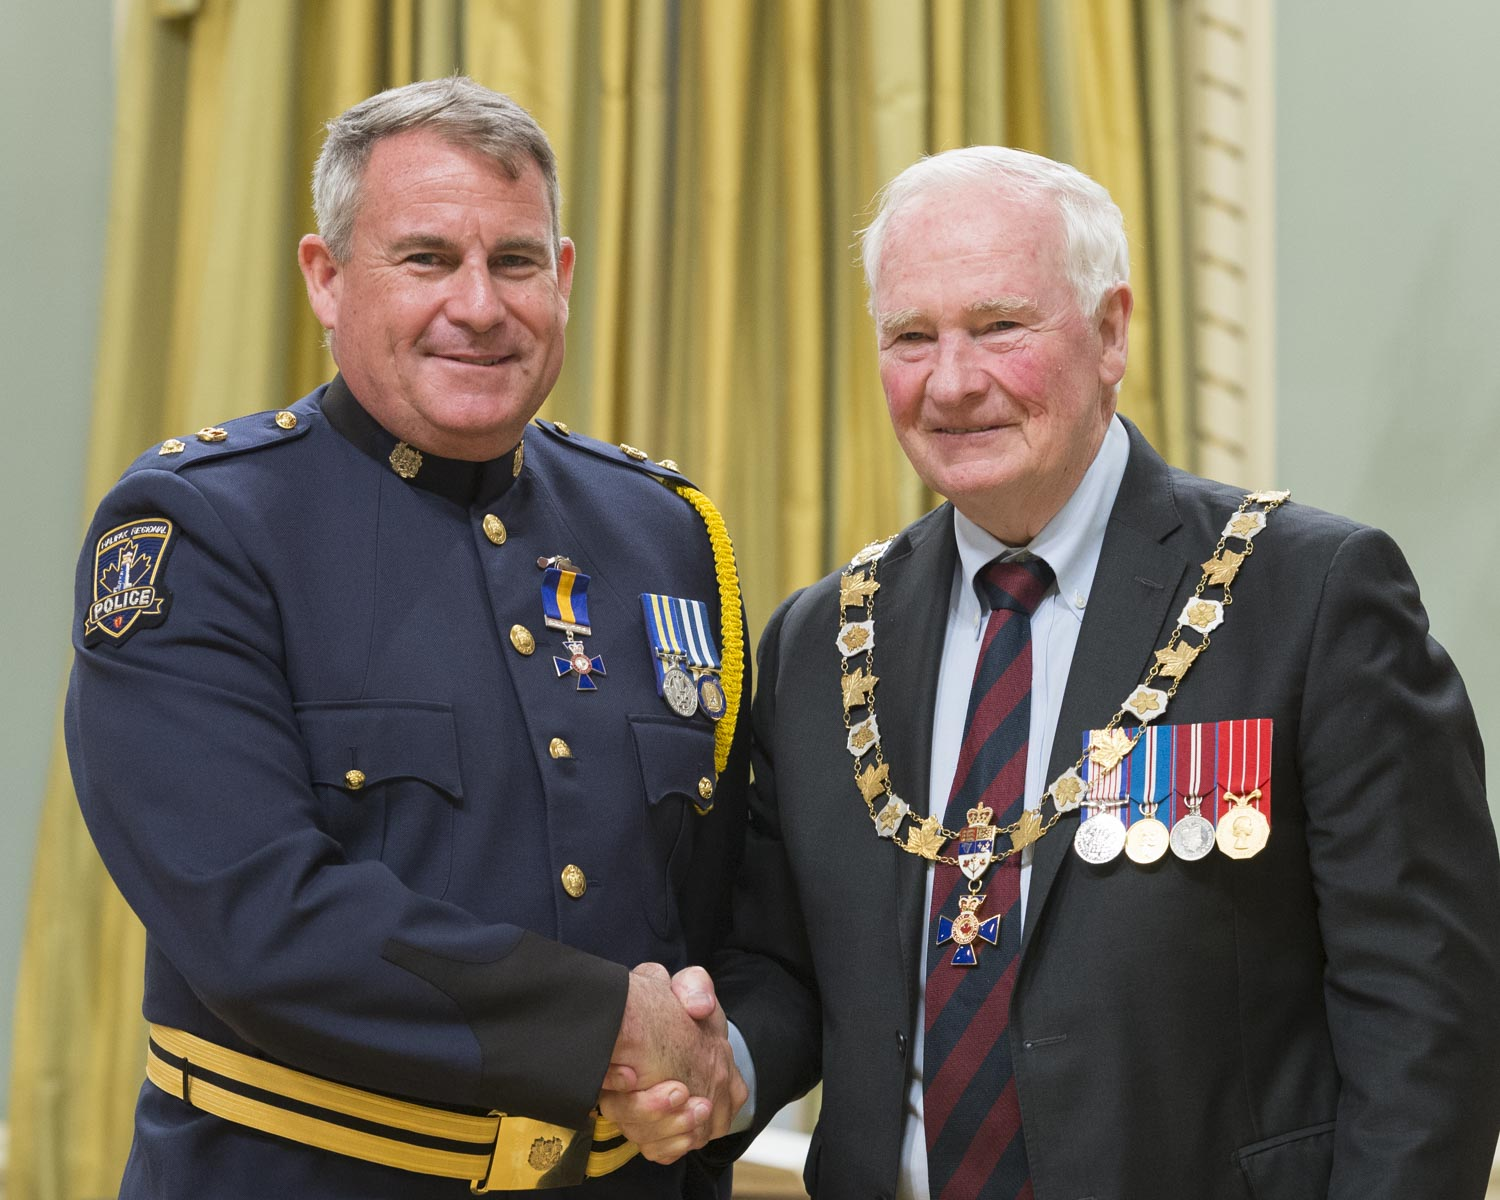 His Excellency presented the Order at the Member level to Superintendent Sean Edward Auld, M.O.M.,  of the Halifax Regional Police, Nova Scotia.